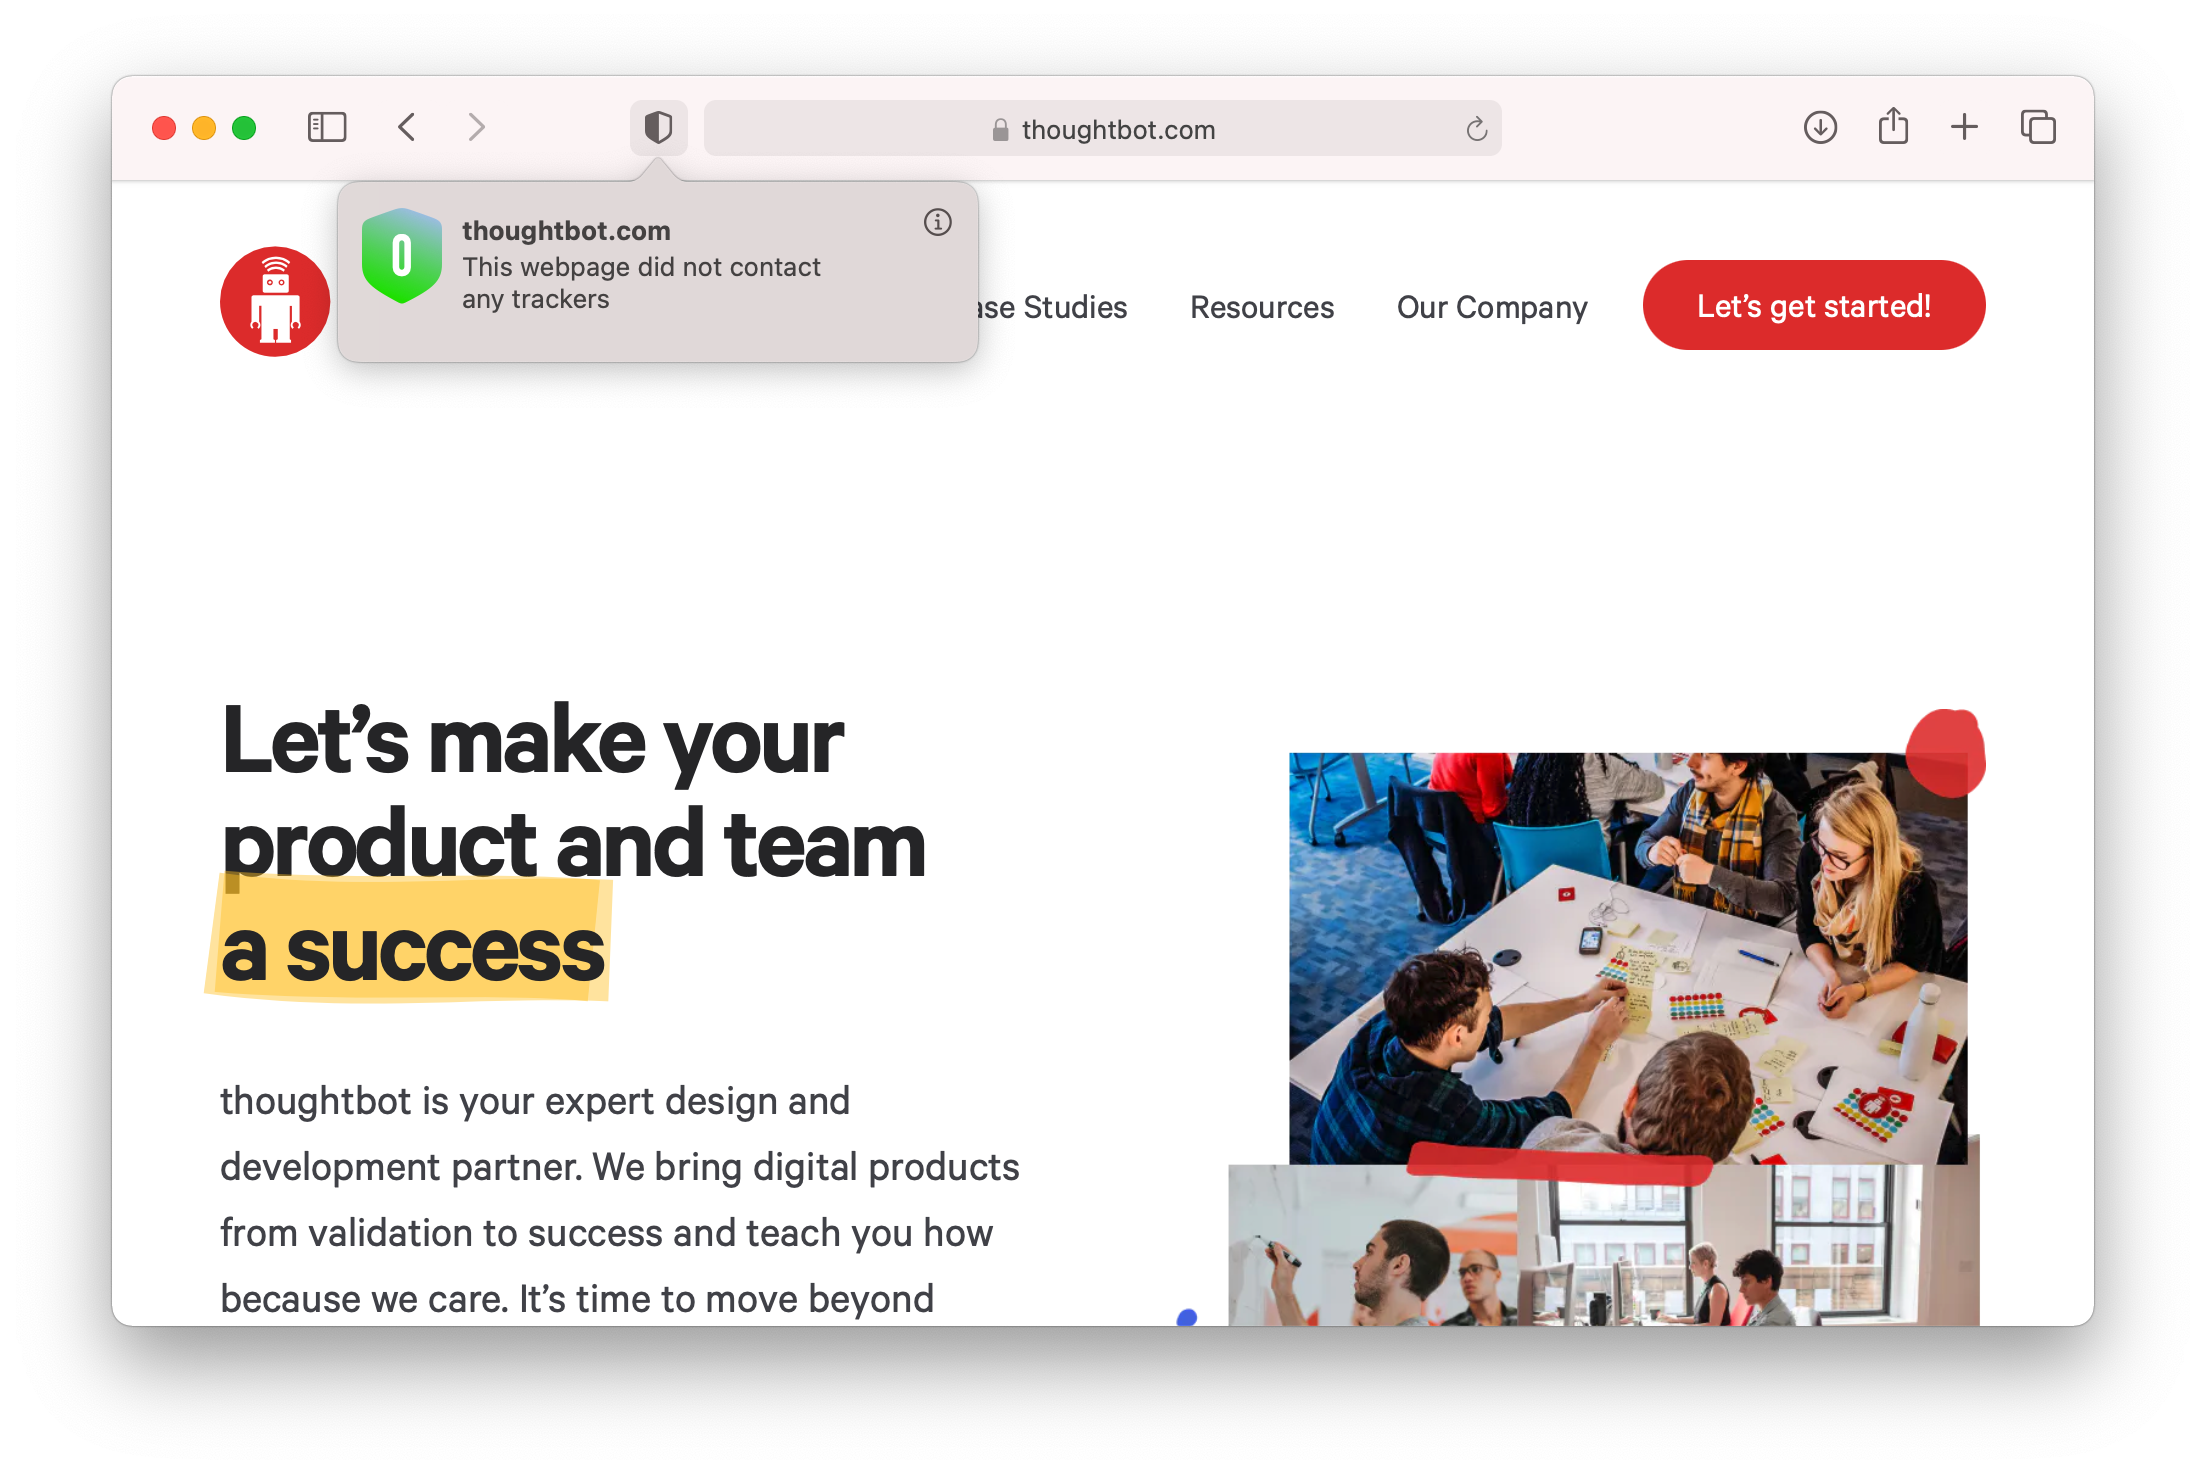 Pop up shows no trackers for thoughtbot.com